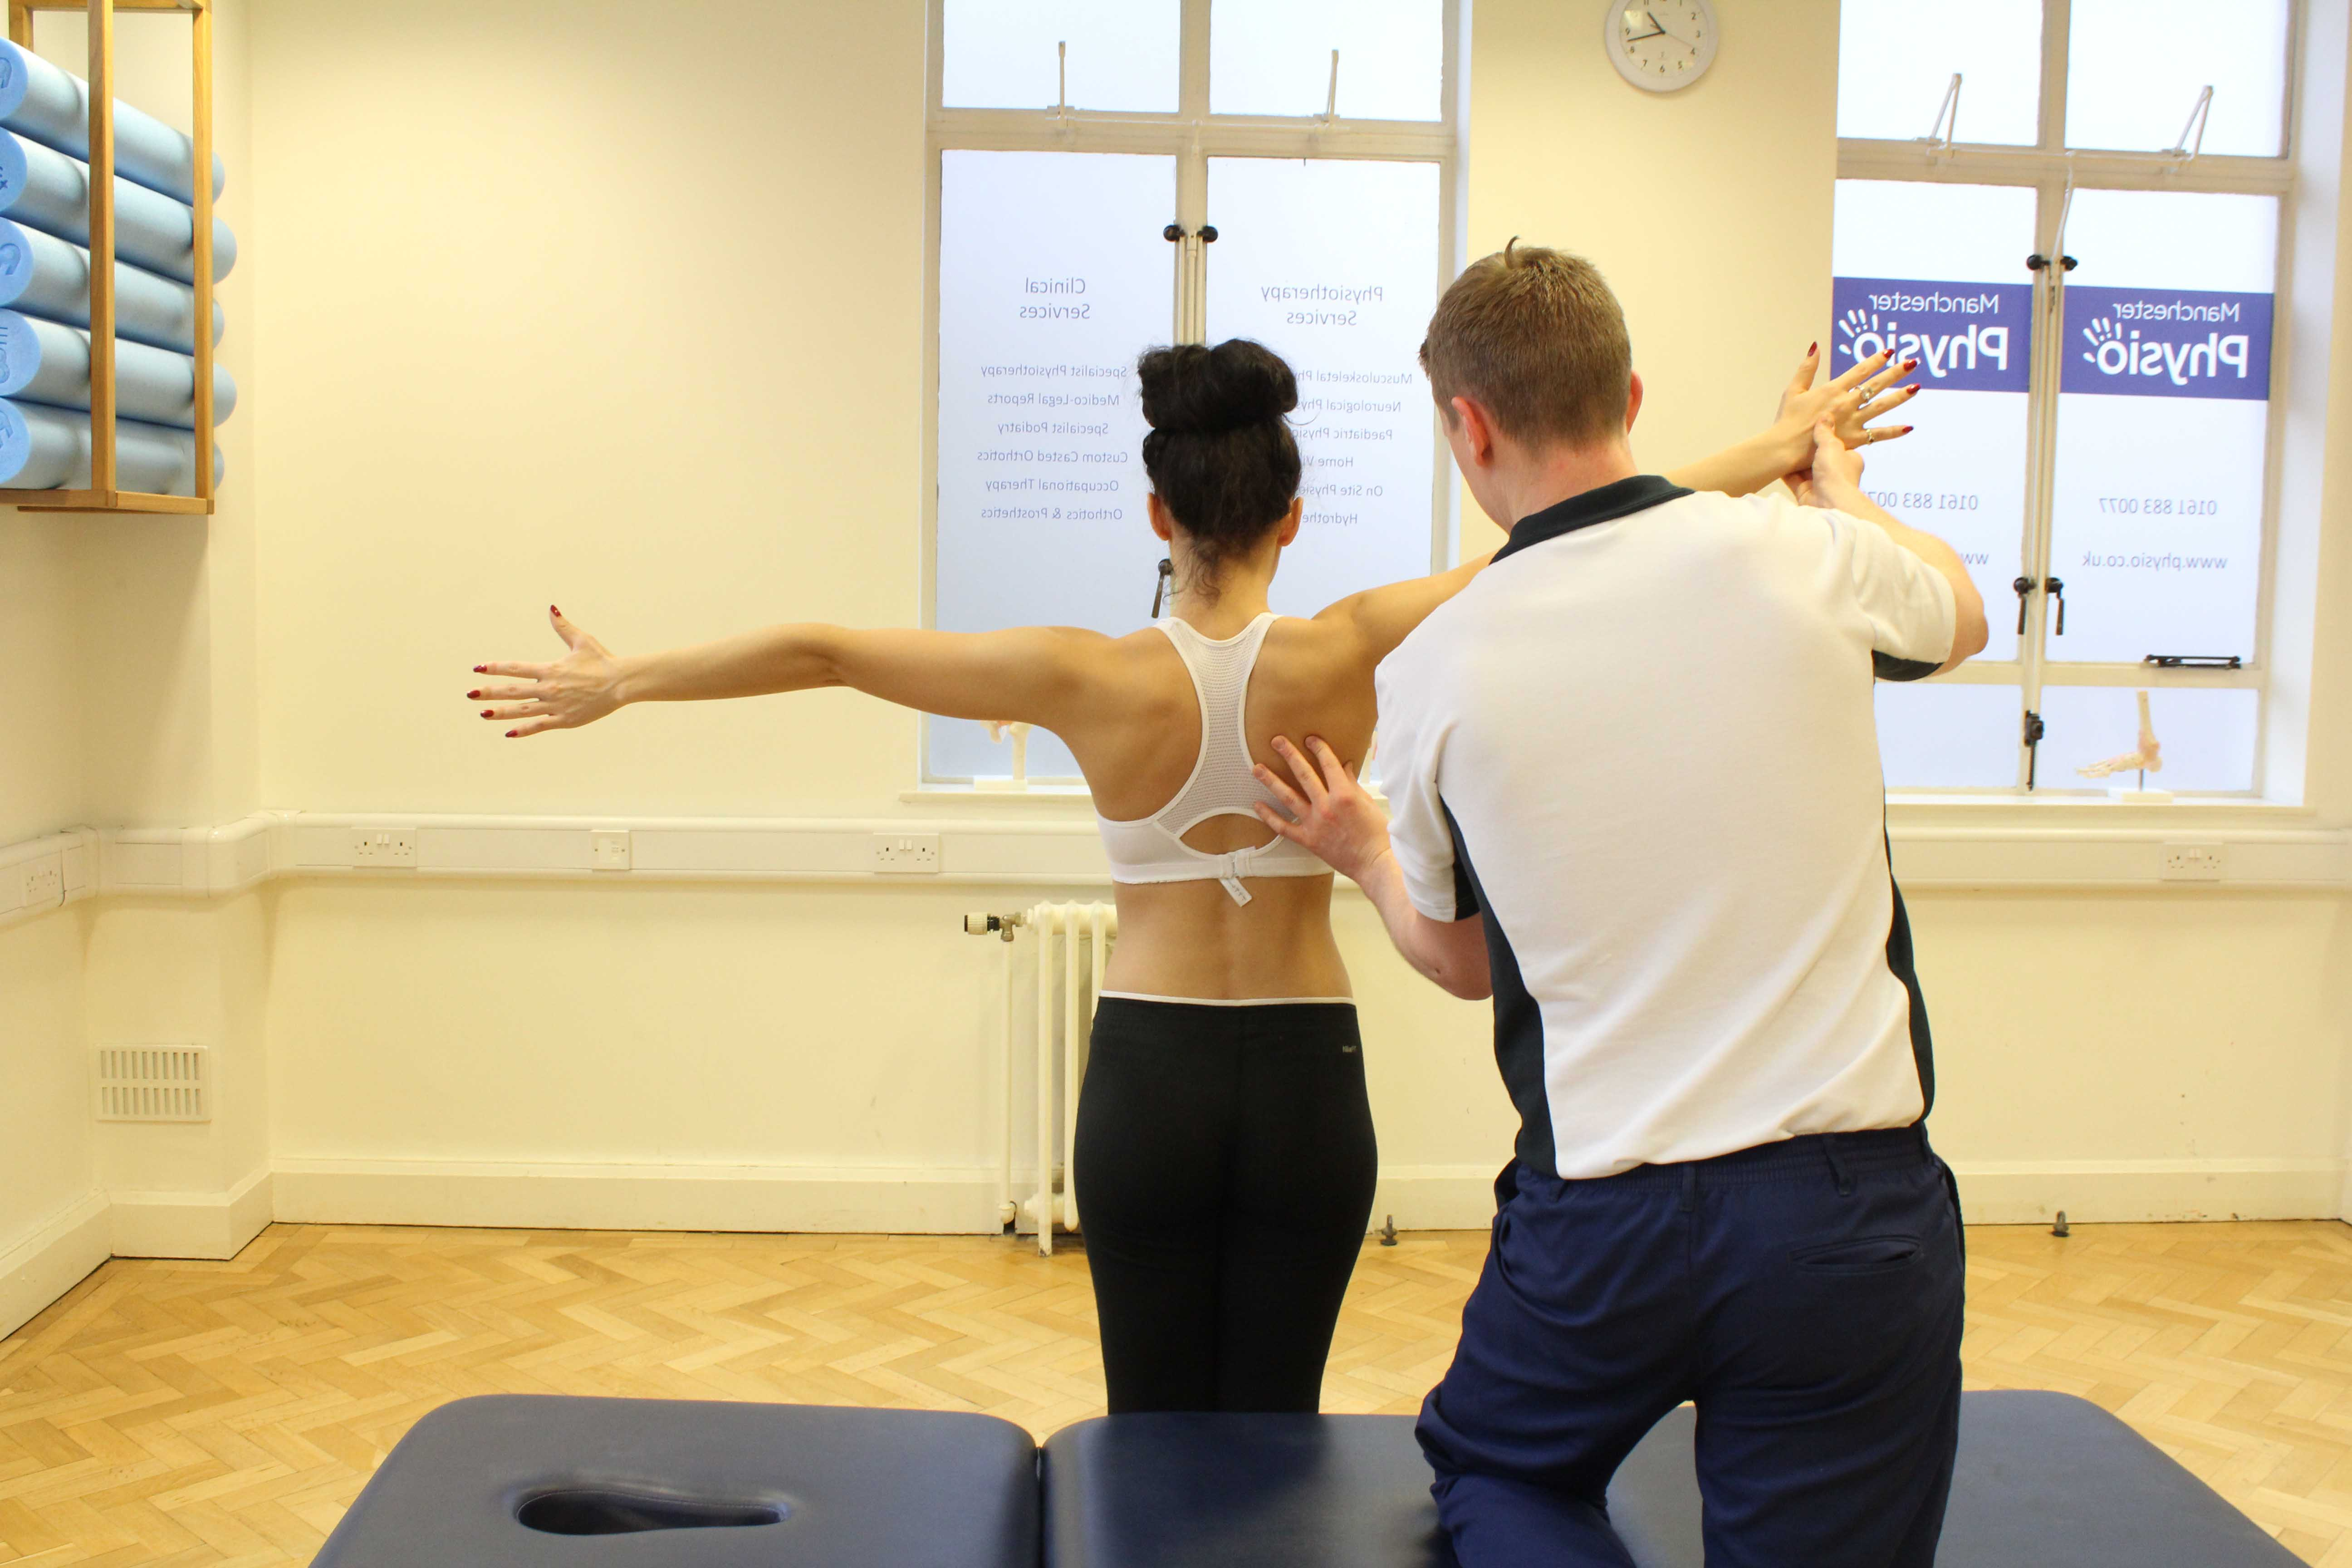 Scapular movement assessment by experienced MSK Physiotherapist